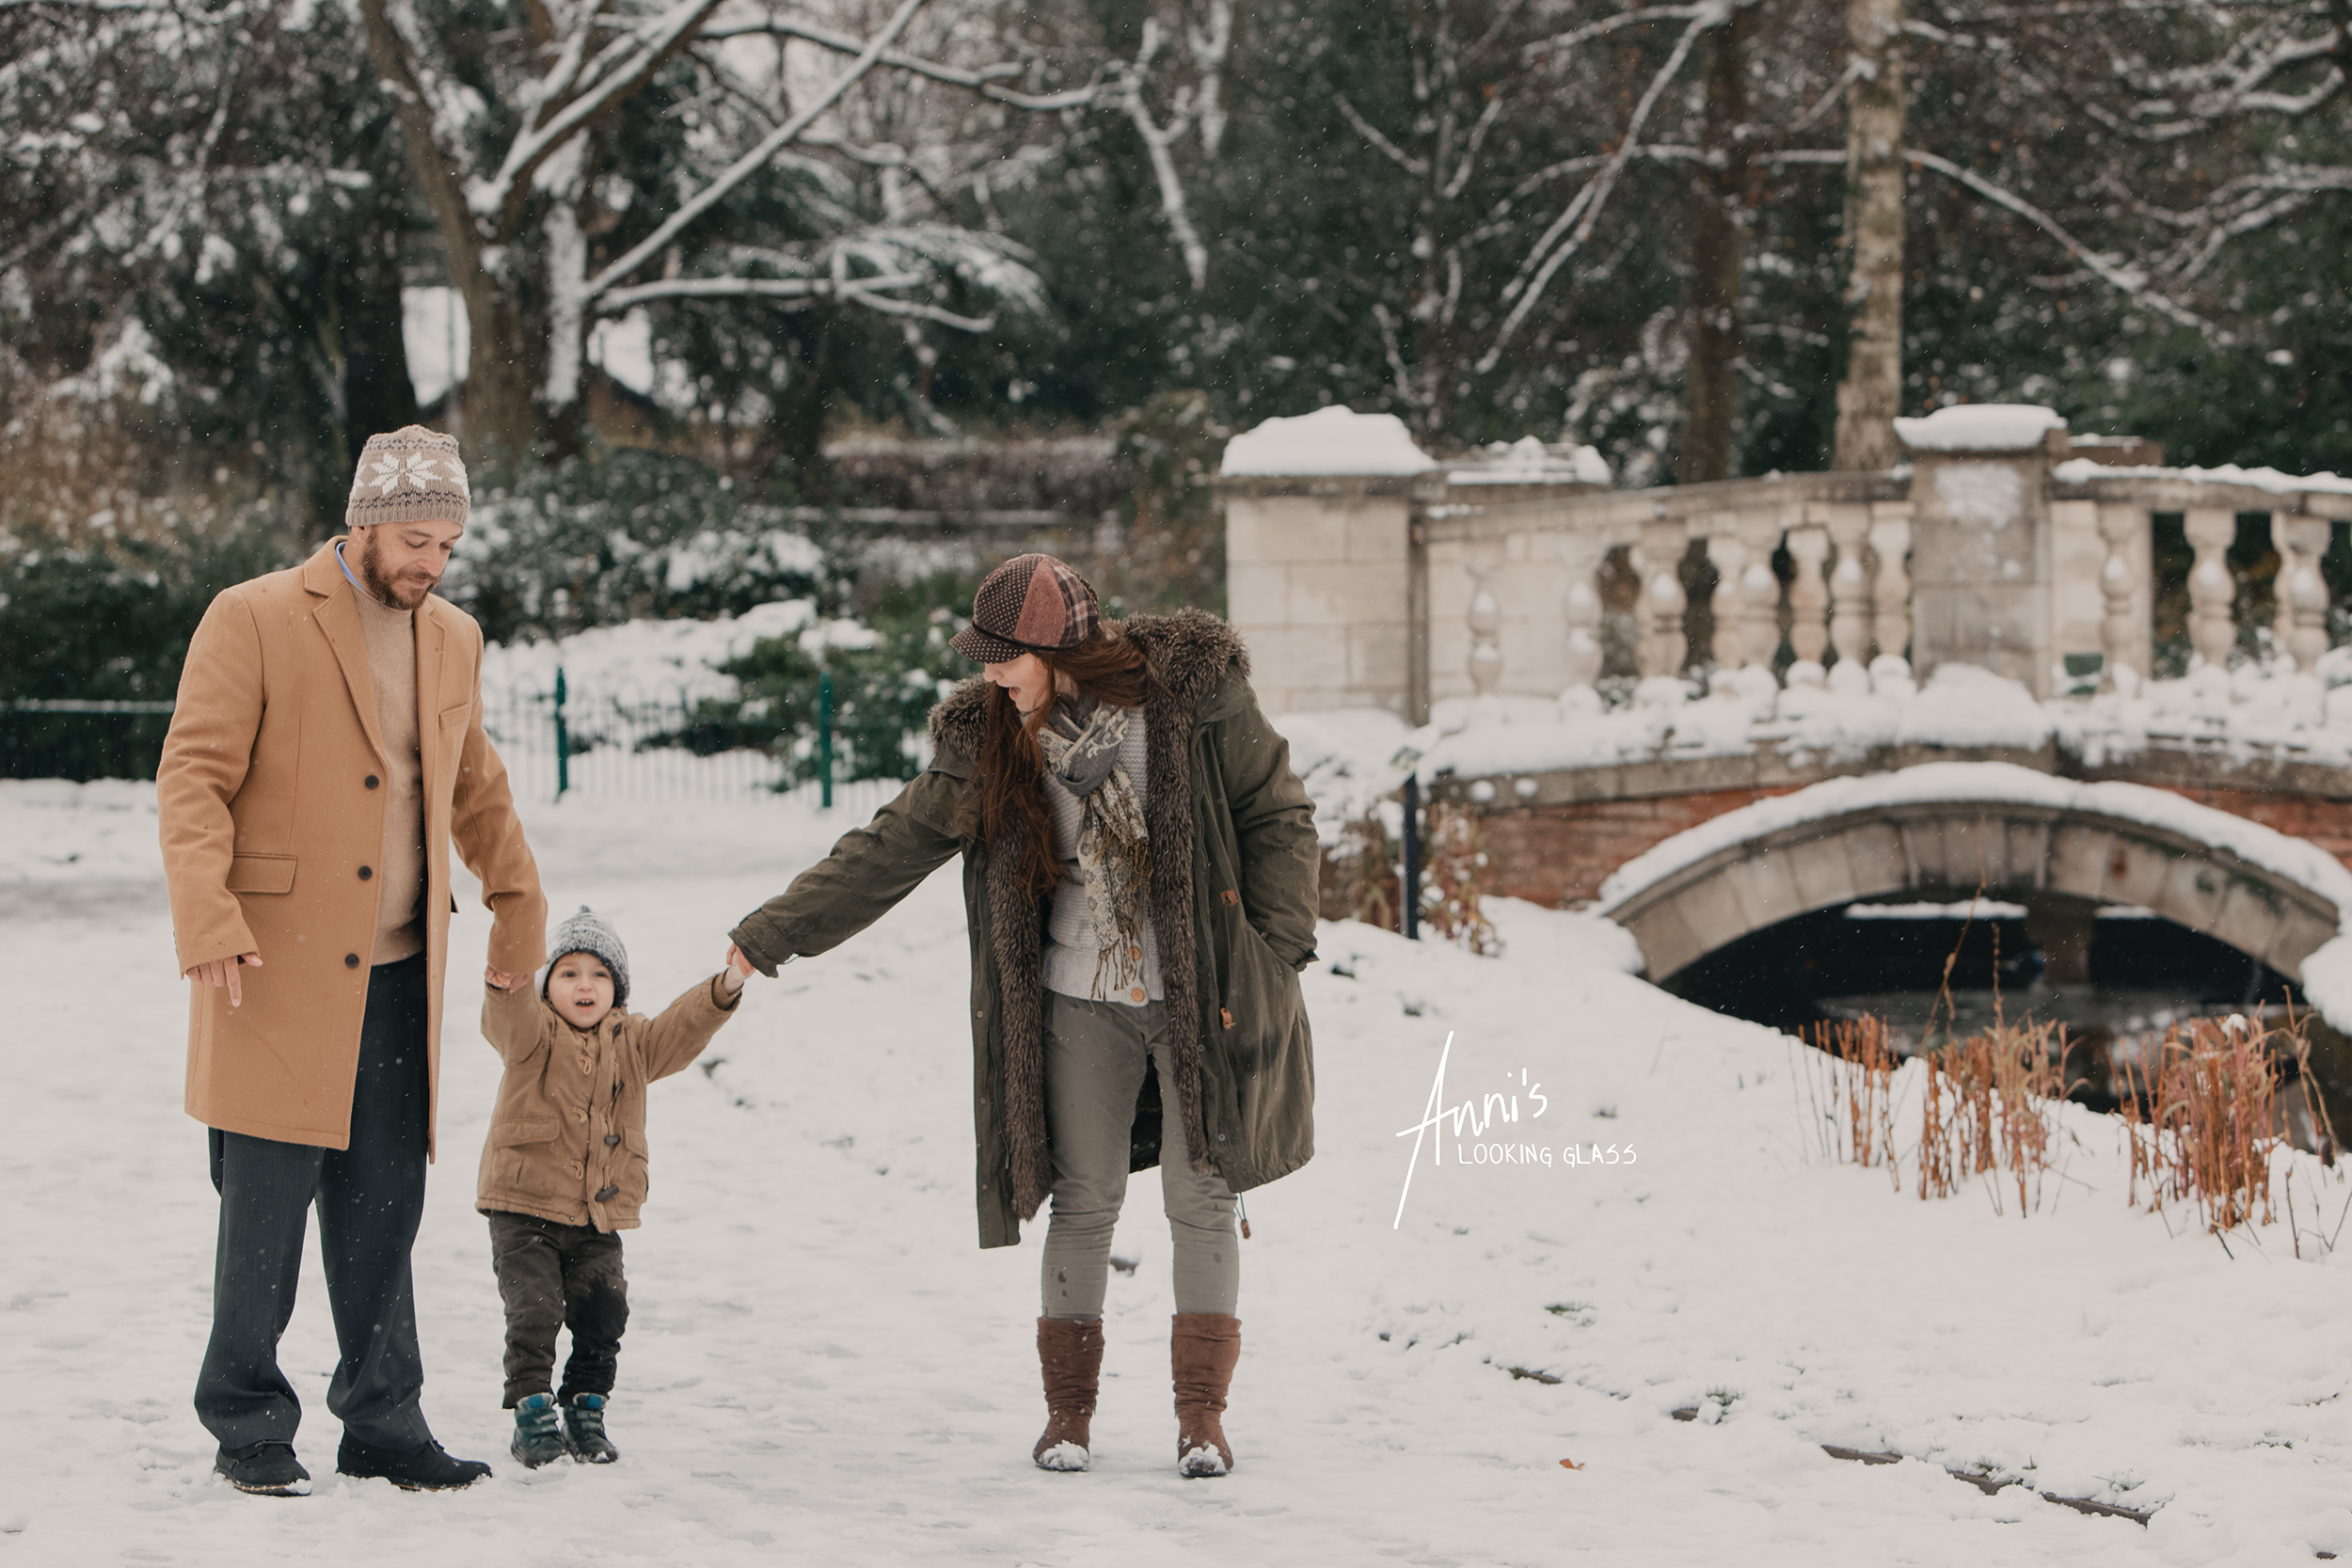 A father and mother walk with their toddler son between in a winter scene at Queens Park, Loughborough